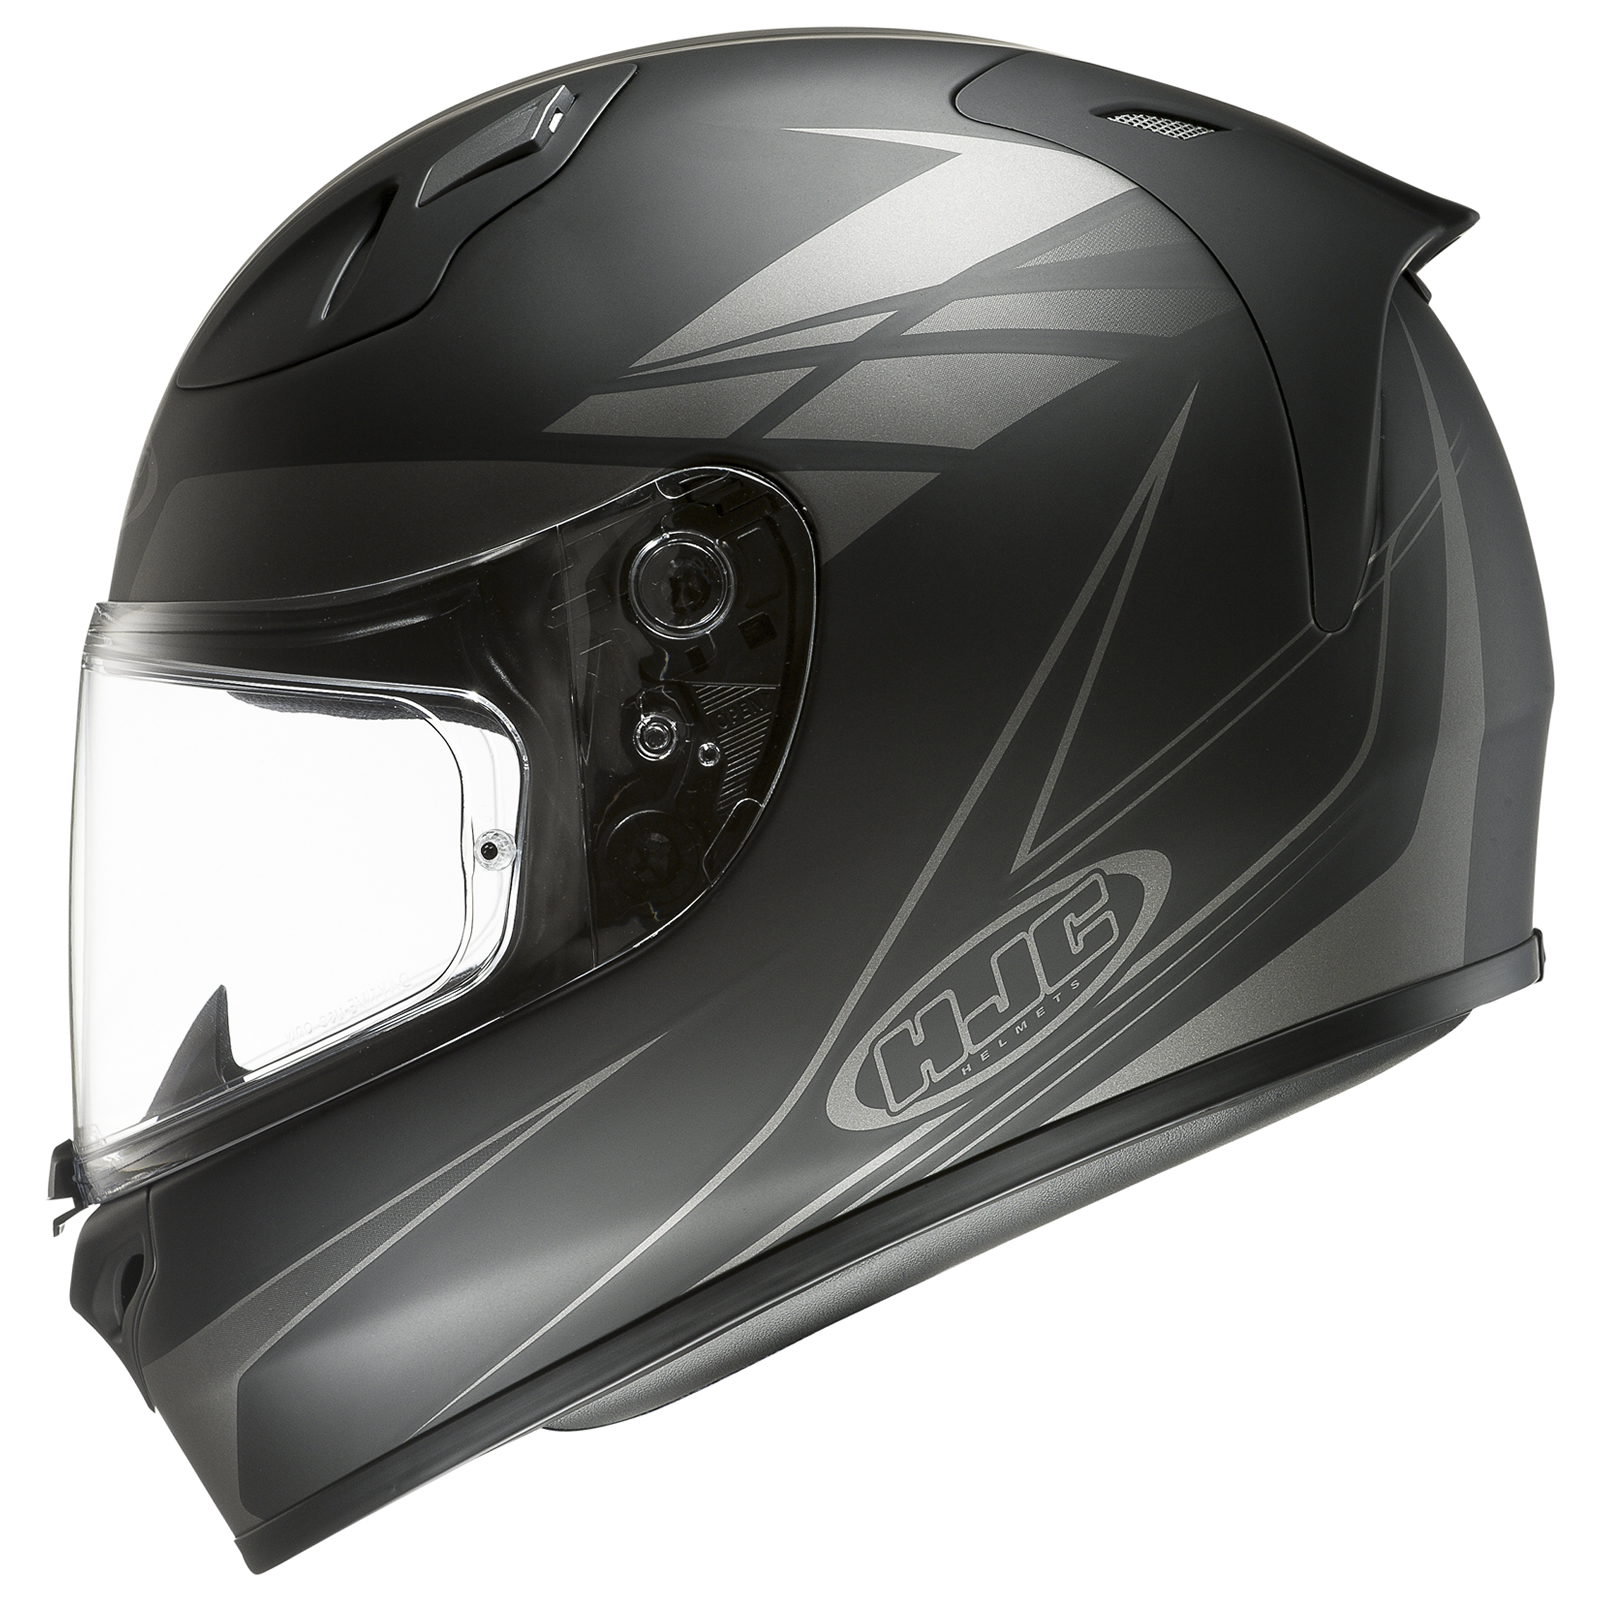 hjc fg 17 force matt black grey motorcycle helmet acu full face crash motorbike ebay. Black Bedroom Furniture Sets. Home Design Ideas